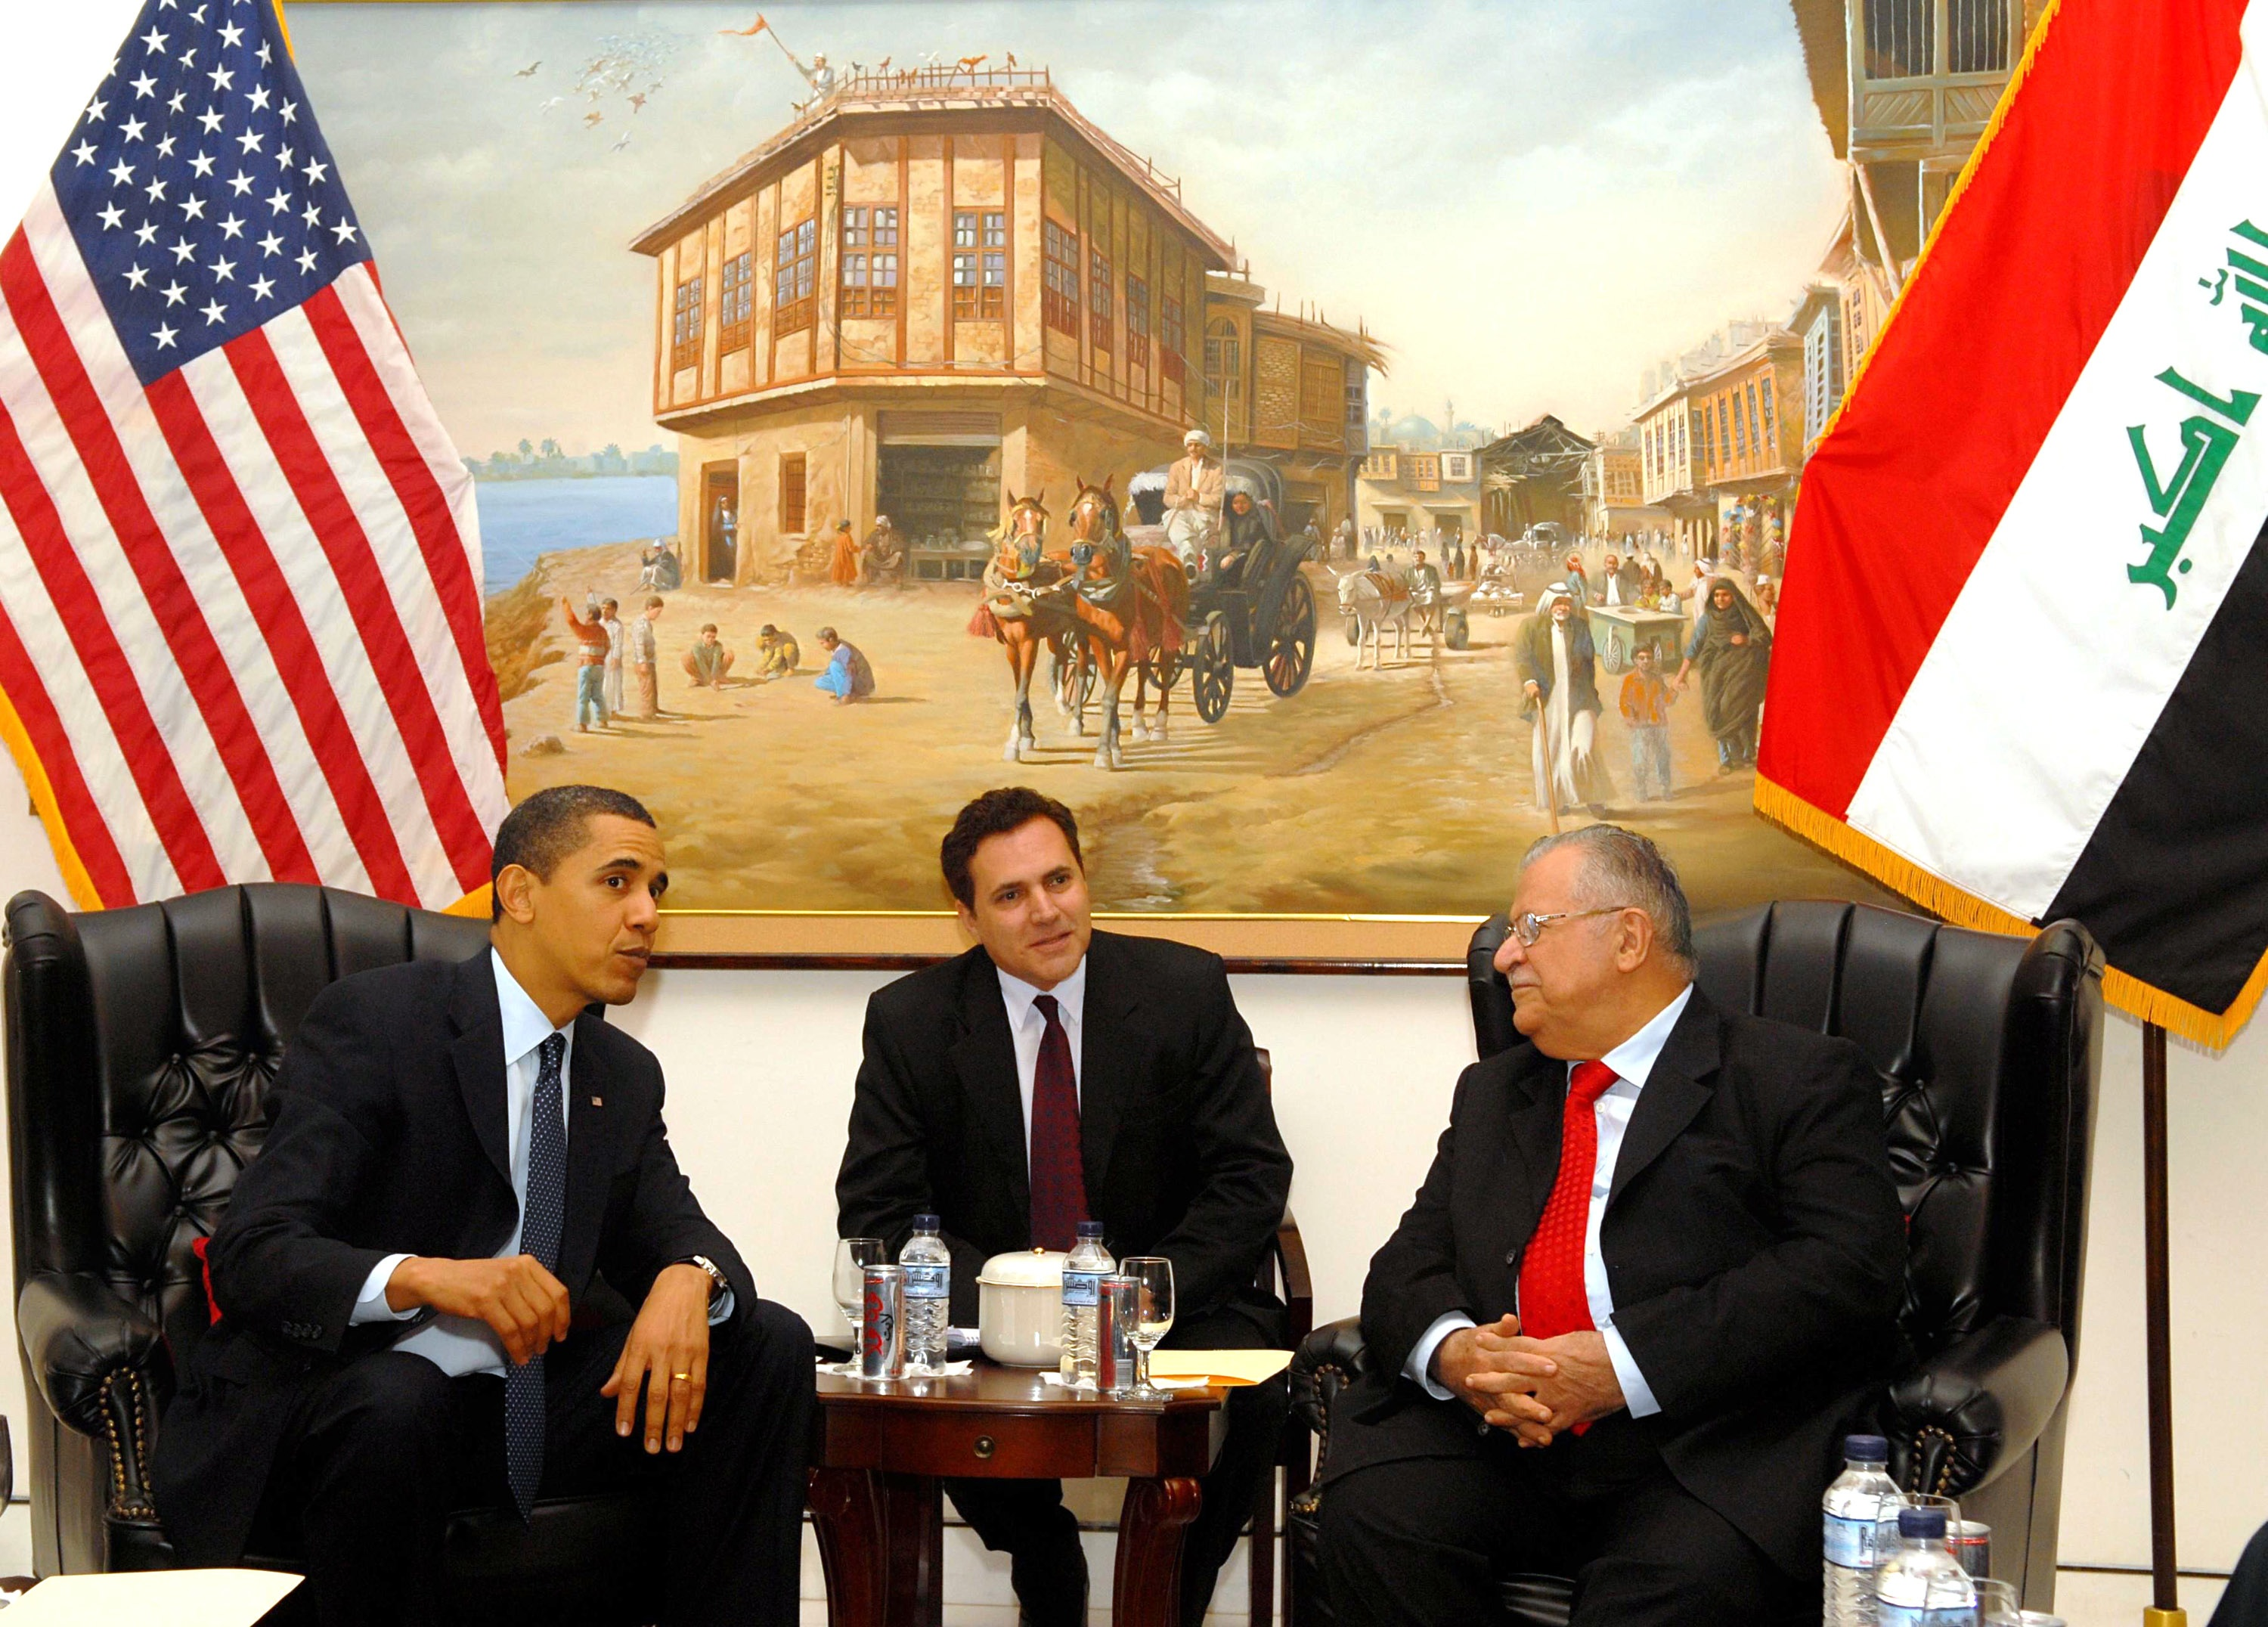 Iraqi President's Office via Getty Images. Iraqi President Jalal Talabani (R) speaks with U.S. President Barack Obama (L) as an interpreter sits (C) April 7, 2009 in Baghdad, Iraq. Obama made a surprise visit to Iraq and spoke about the transition of power to the Iraqi government.